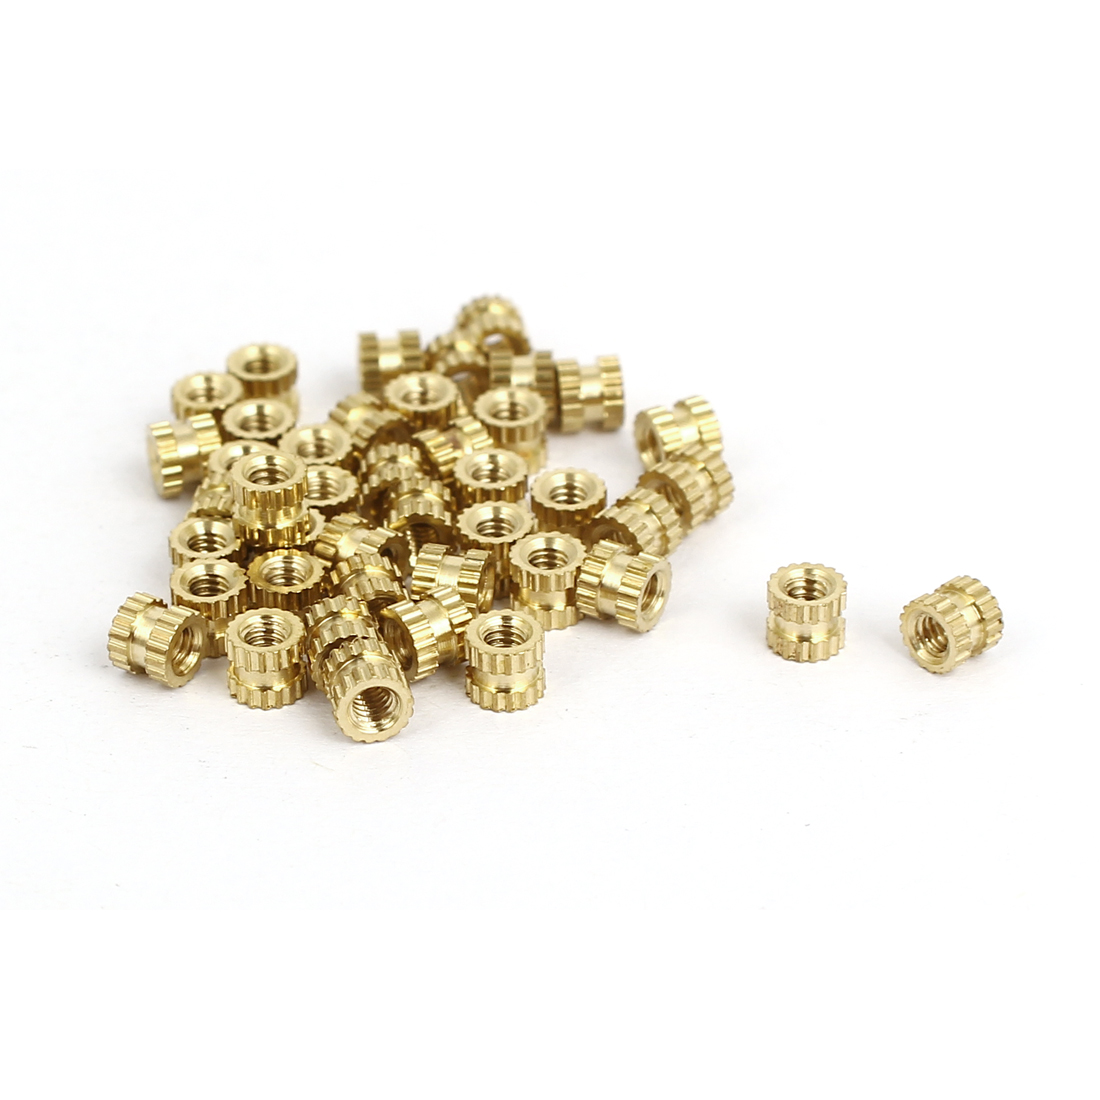 M2x3mmx3.5mm Female Threaded Brass Knurled Insert Embedded Nuts Gold Tone 40pcs